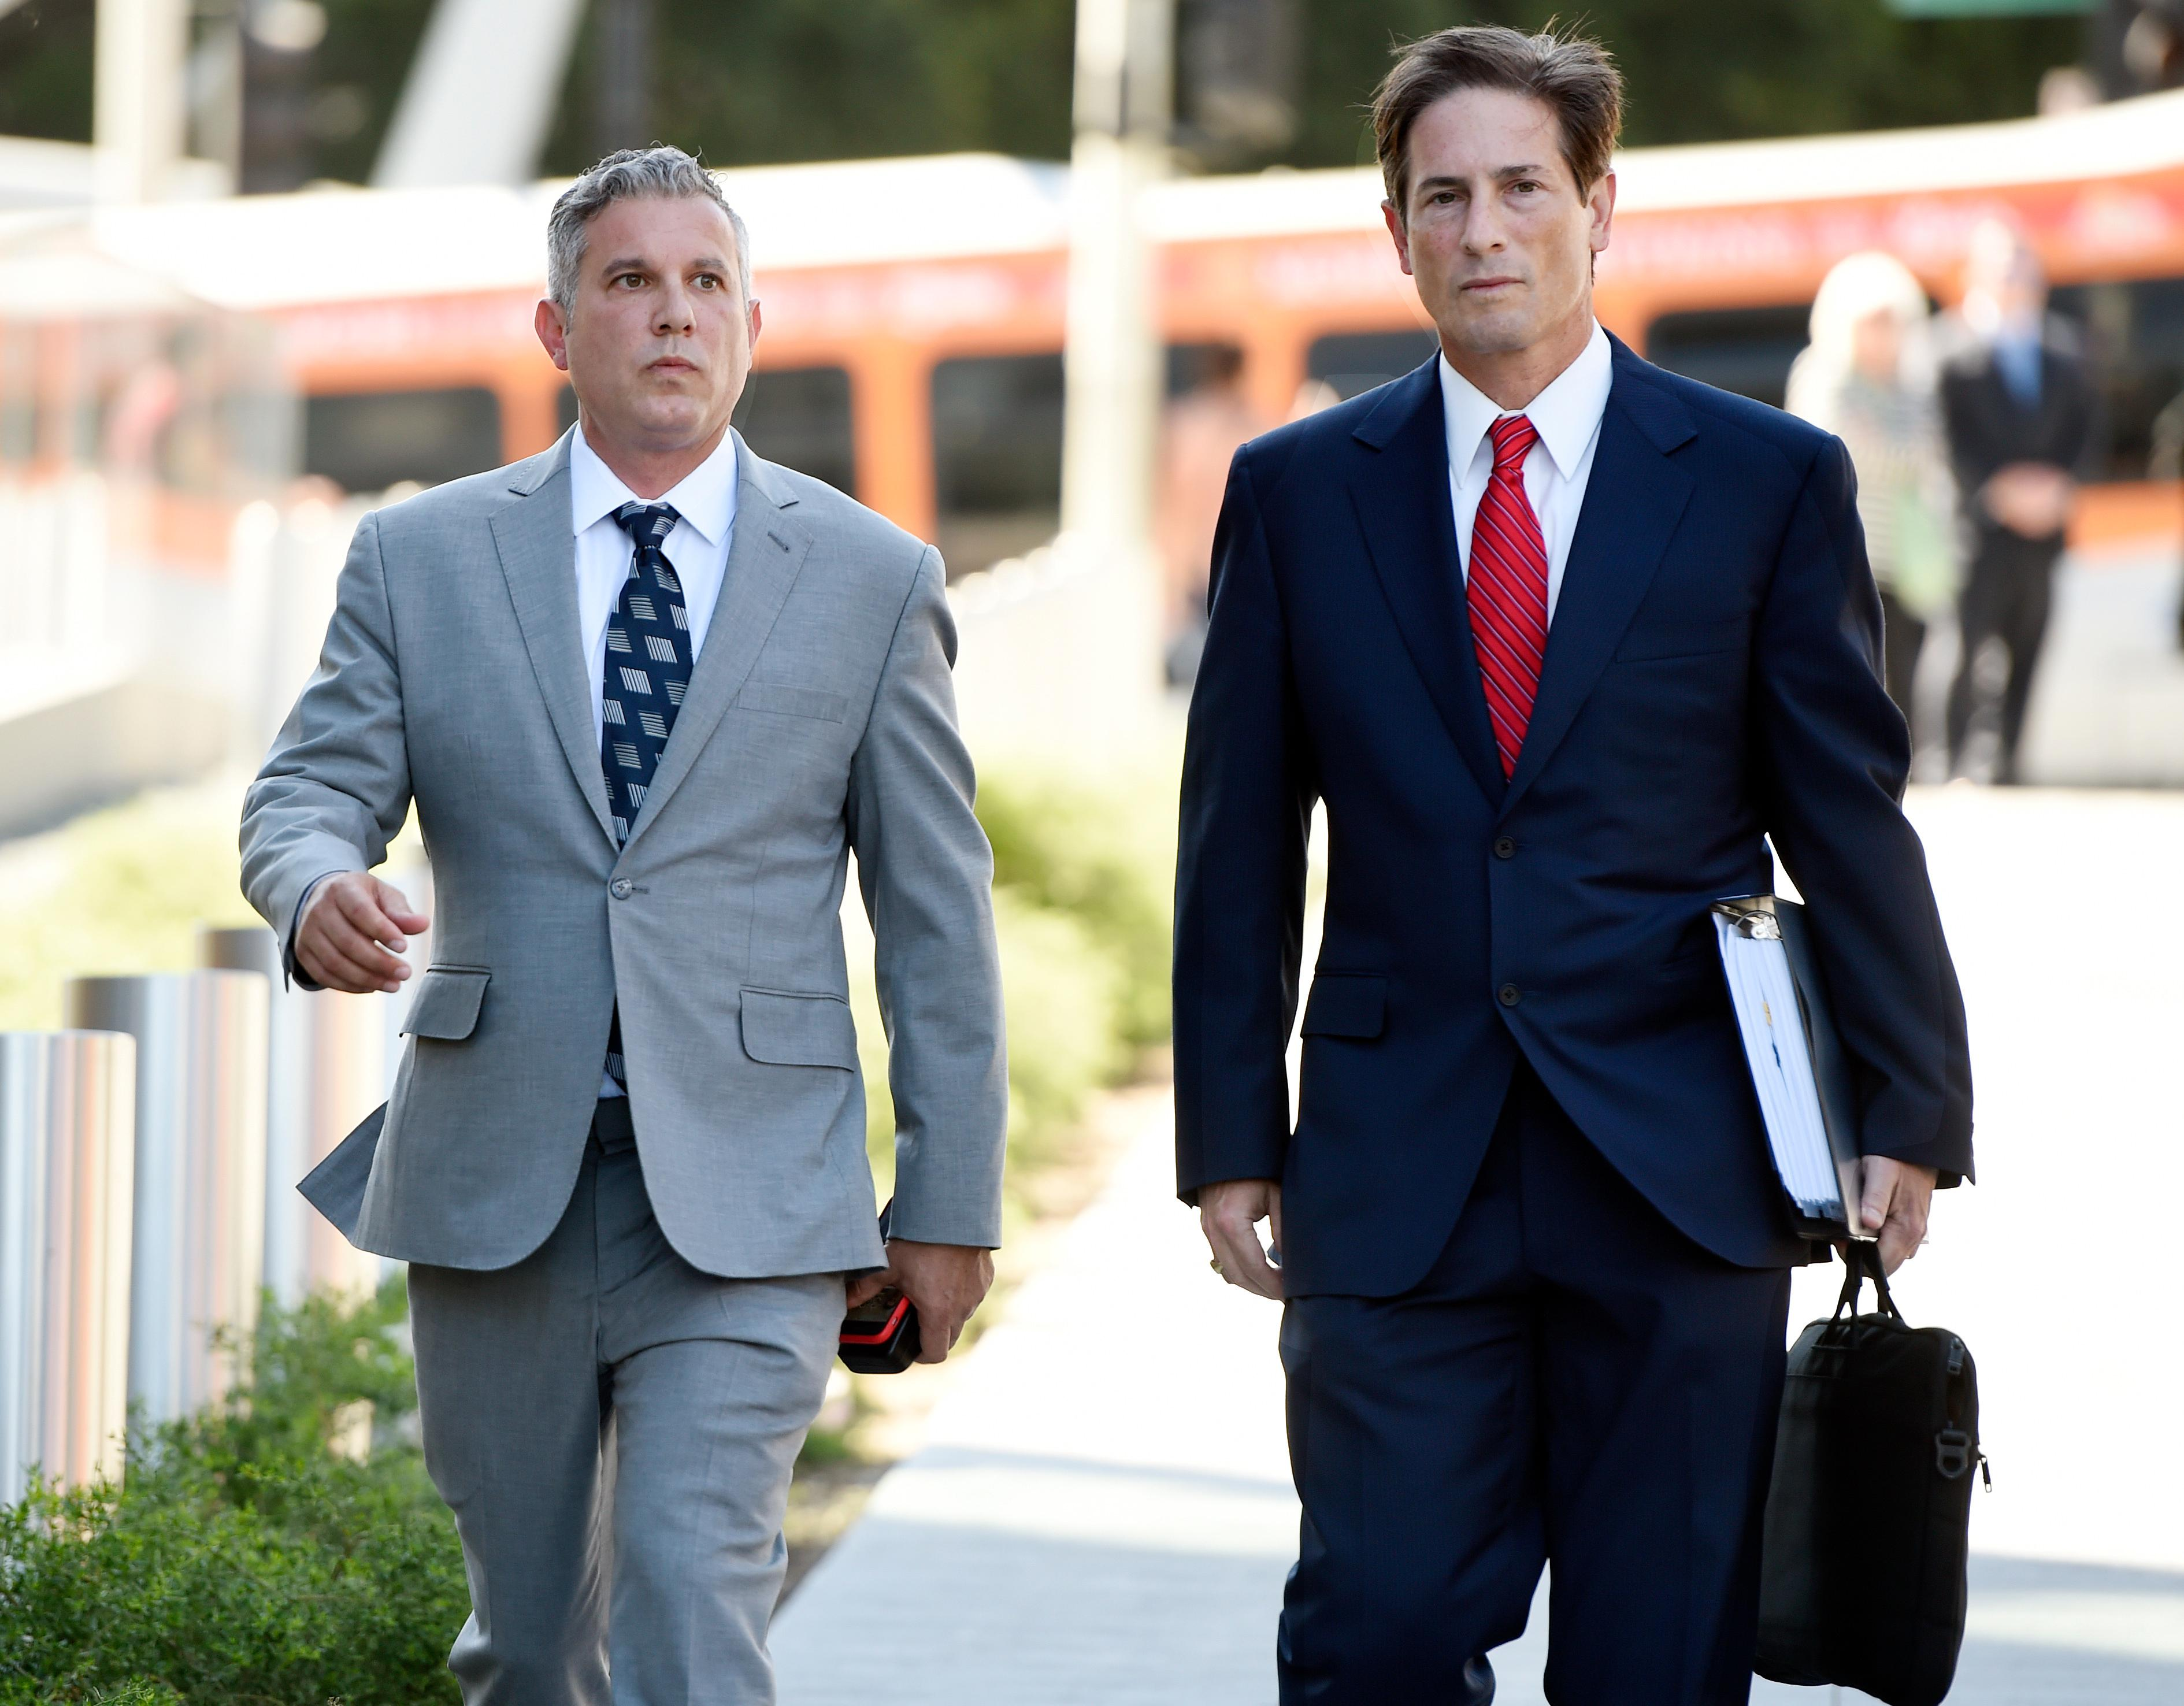 Jonathan Todd Schwartz, left, former business manager for singer Alanis Morissette, arrives with his attorney Nathan Hoffman at U.S. federal court for the sentencing in his embezzlement case, Wednesday, May 3, 2017, in Los Angeles. Schwartz pleaded guilty earlier this year after admitting he embezzled more than $7 million from the singer and other celebrities. (AP Photo/Chris Pizzello)